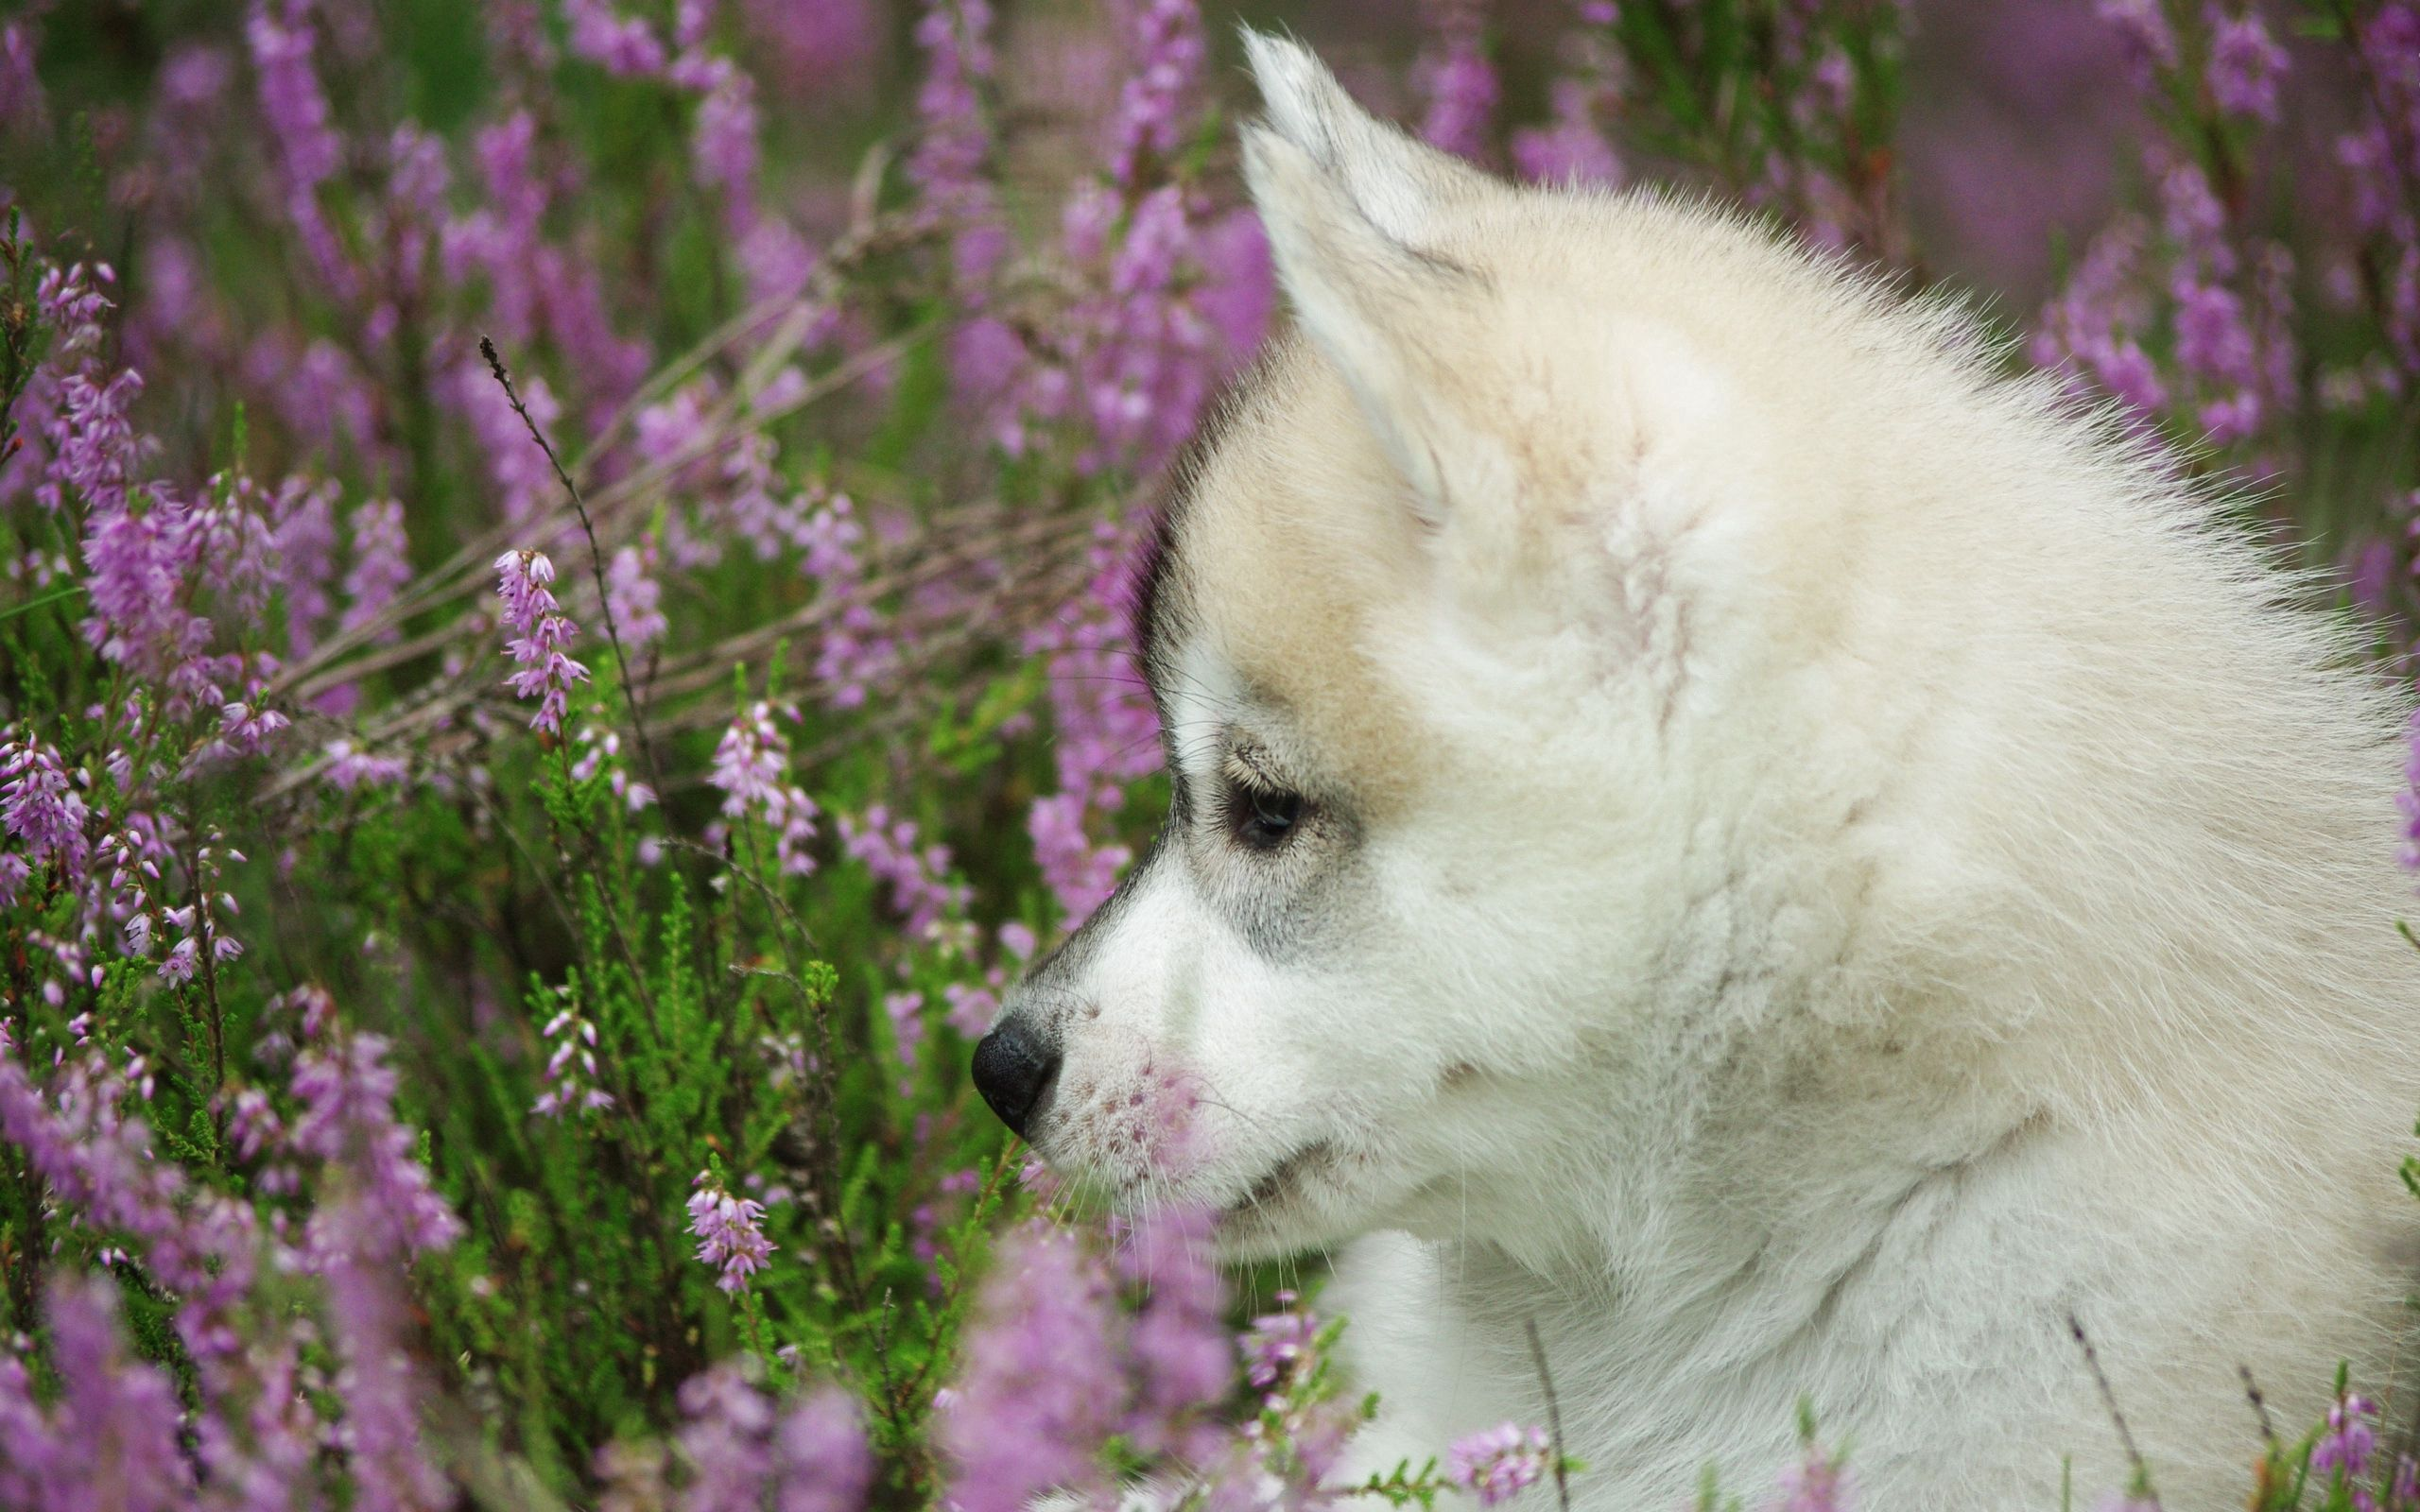 100277 download wallpaper Animals, Puppy, Muzzle, Profile, Dog screensavers and pictures for free